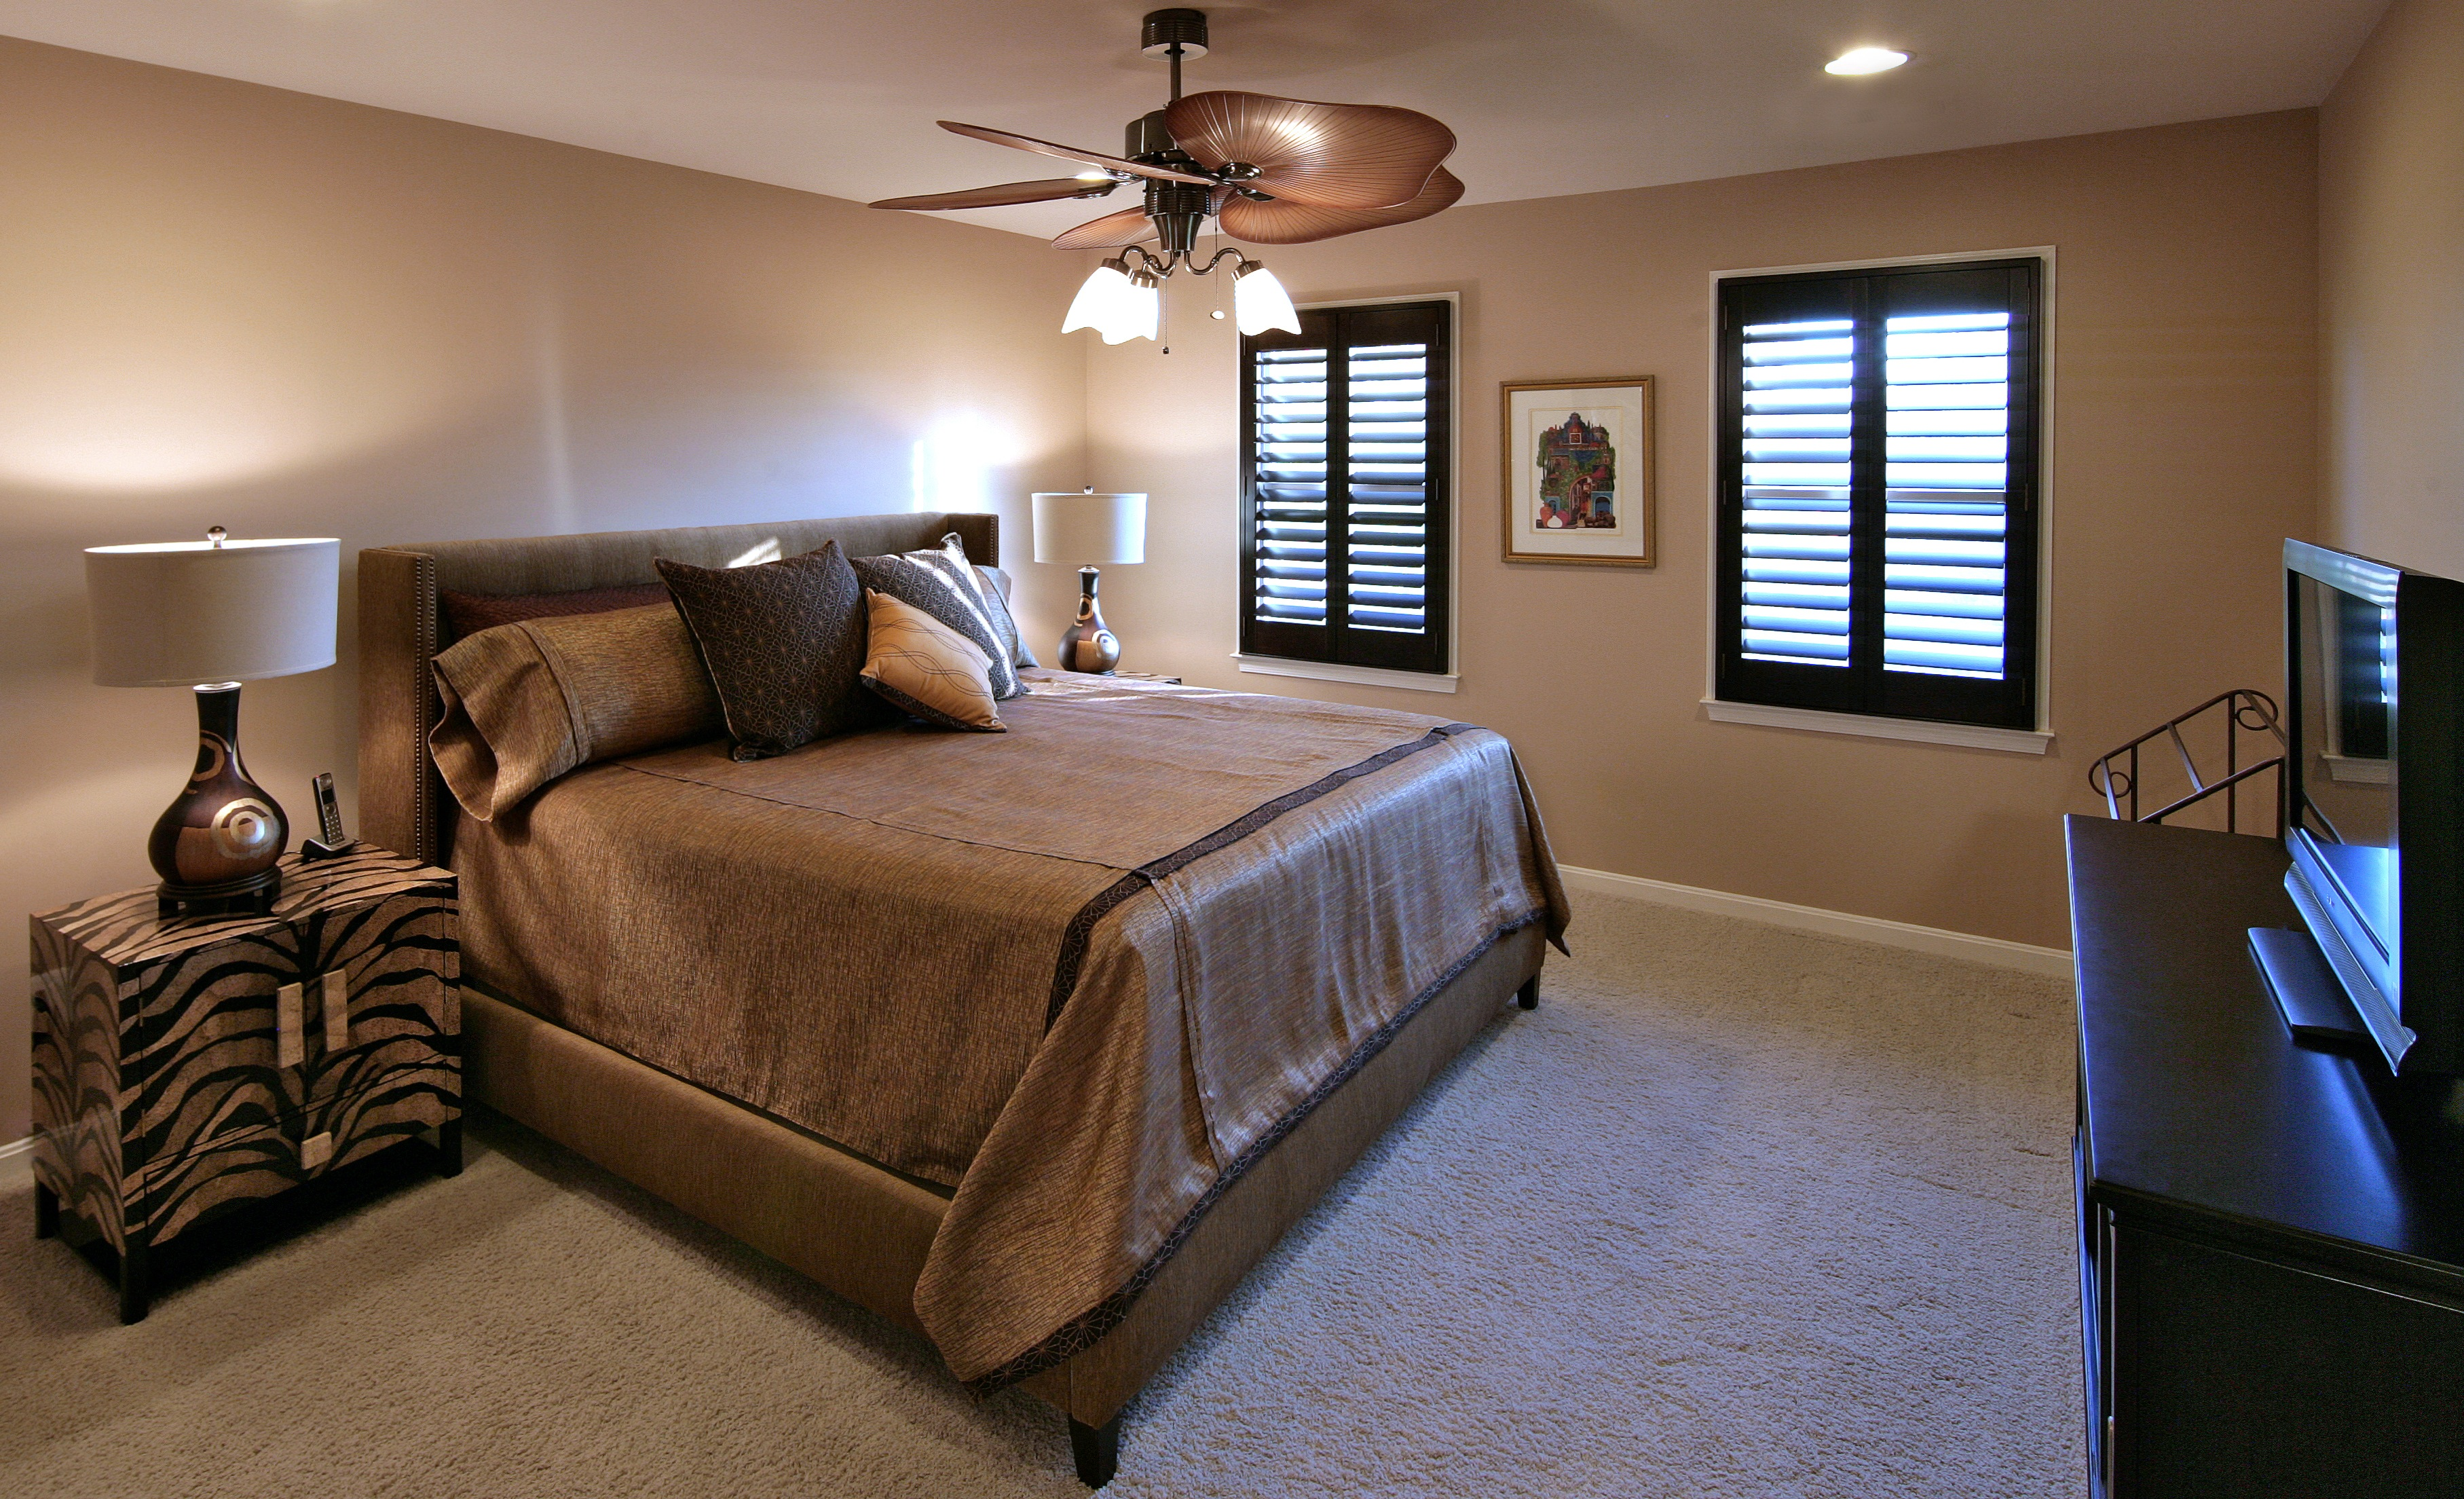 The Newly Remodeled Master Bedroom